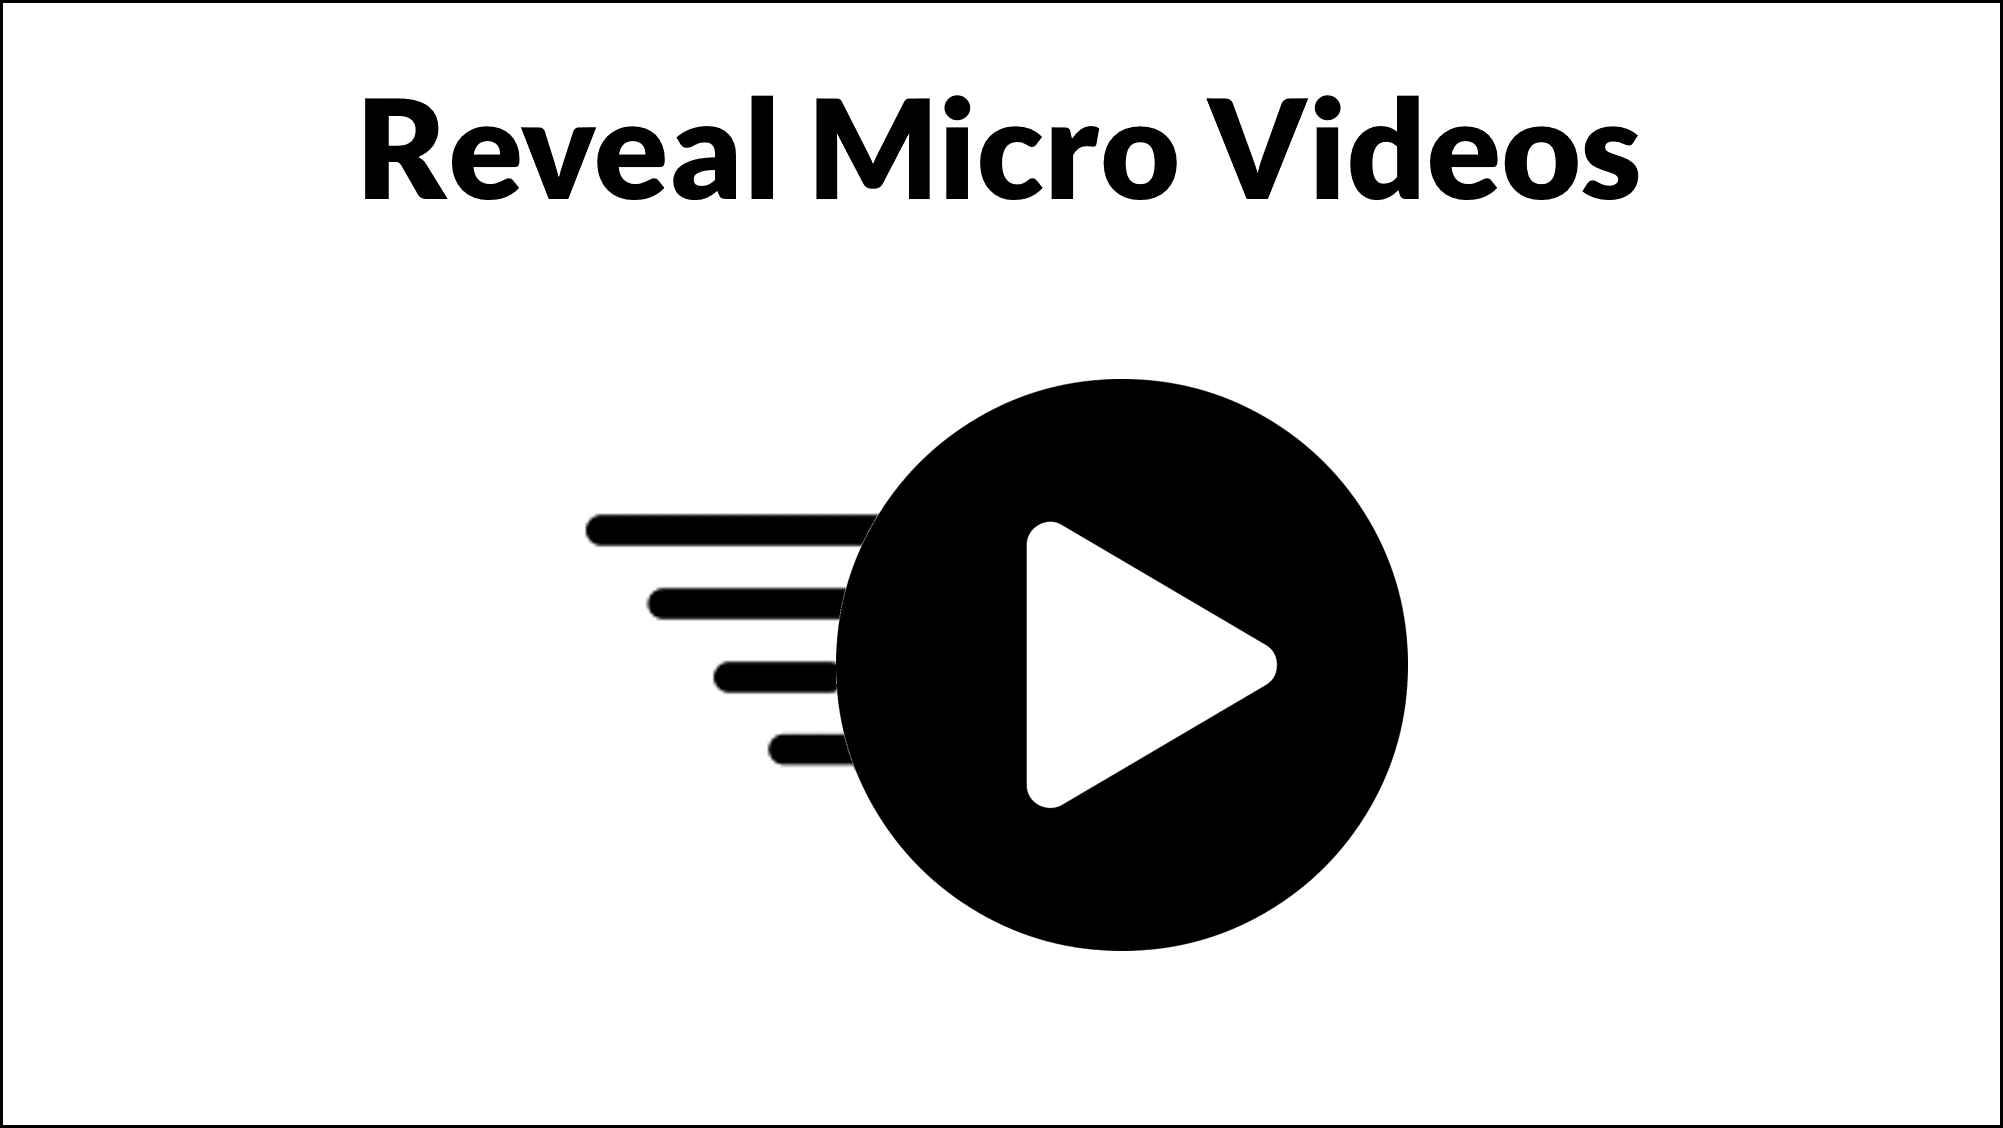 Reveal Micro Videos